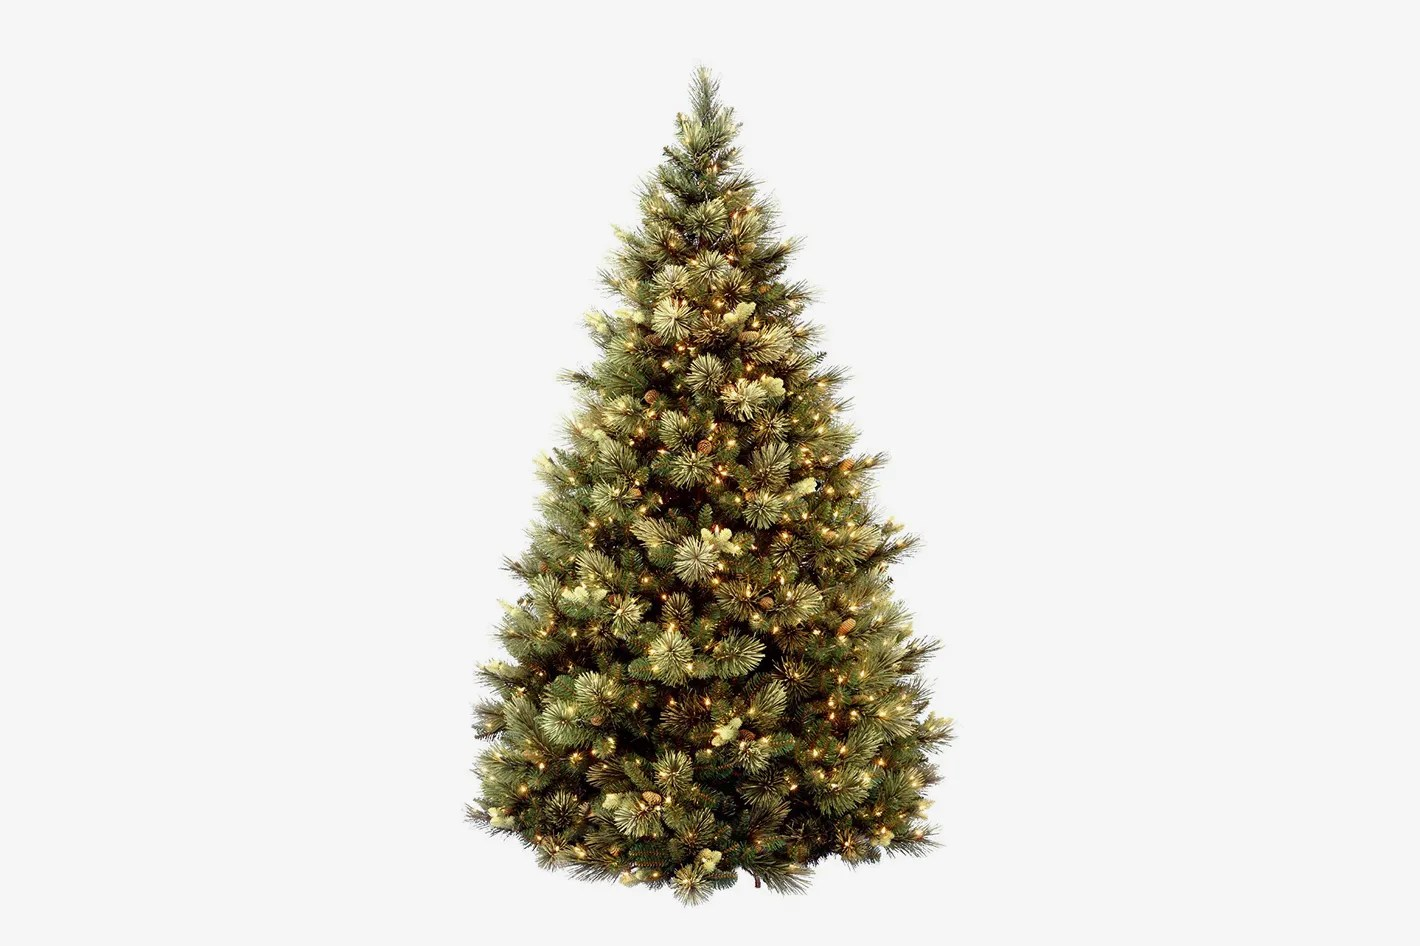 Christmas Tree Stand For Sale National Tree 7 5 Foot Carolina Pine Tree With Flocked Cones And 750 Clear Lights